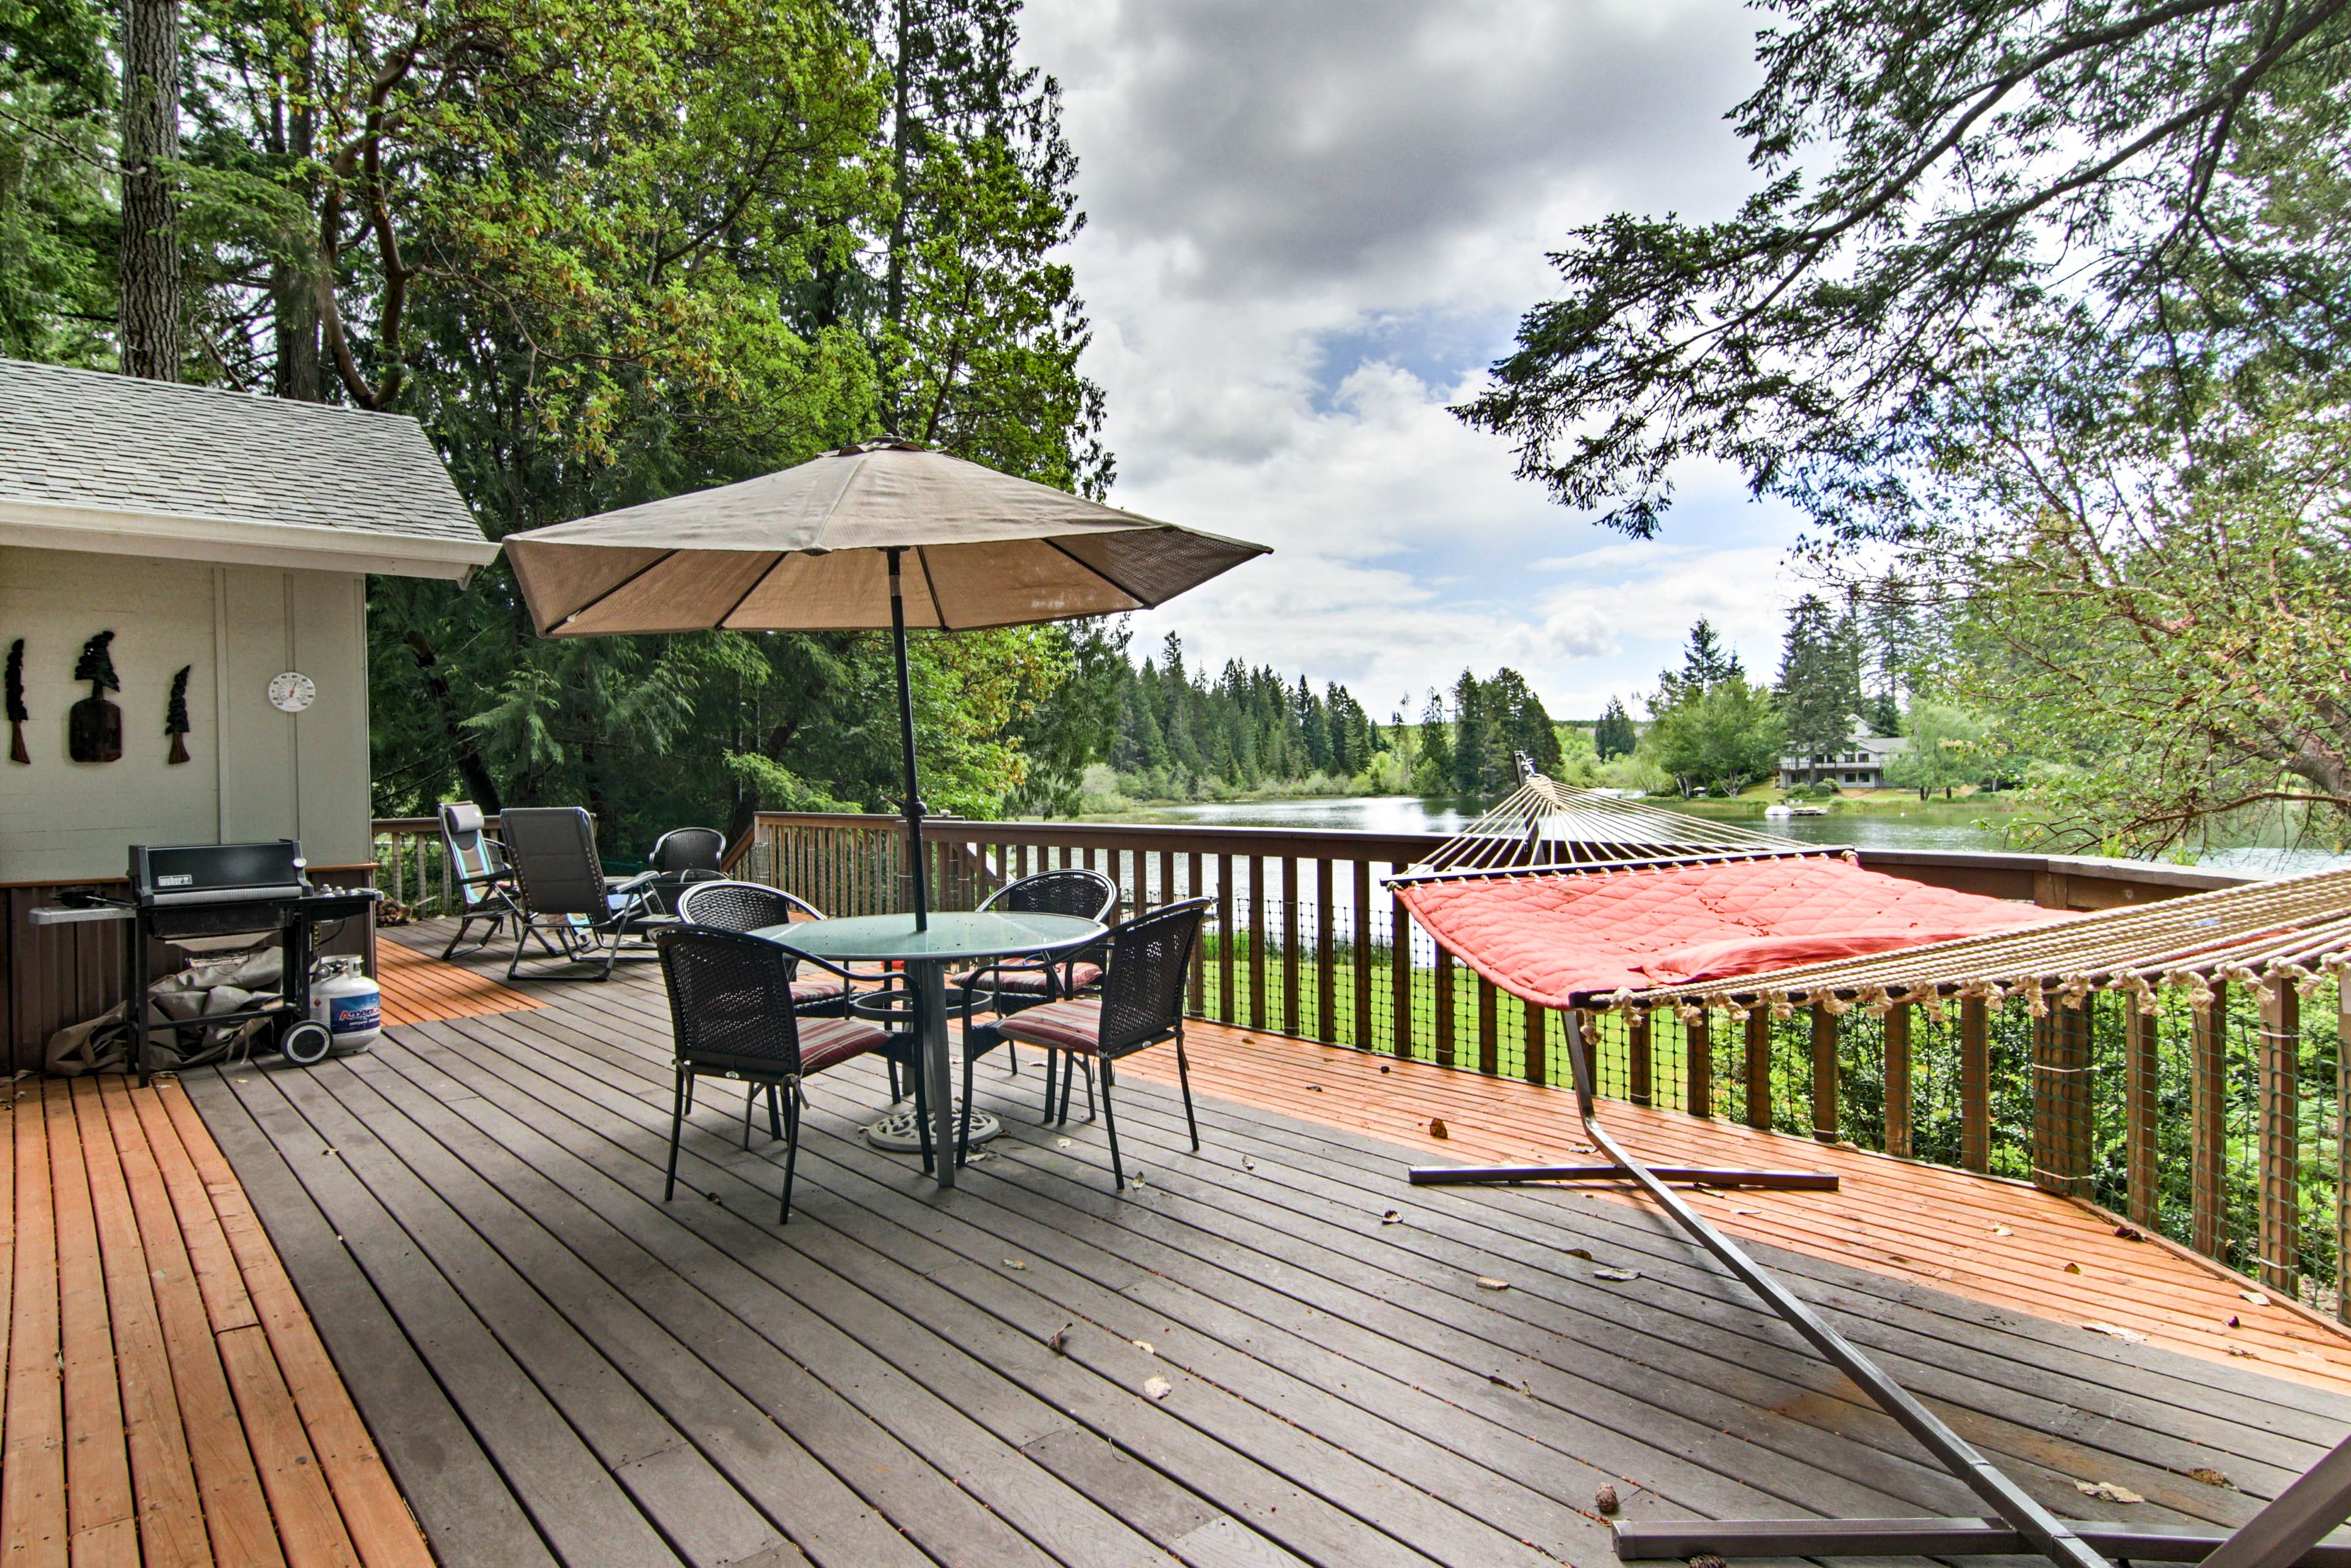 Hang and hammock all day on the spacious deck overlooking the lake.